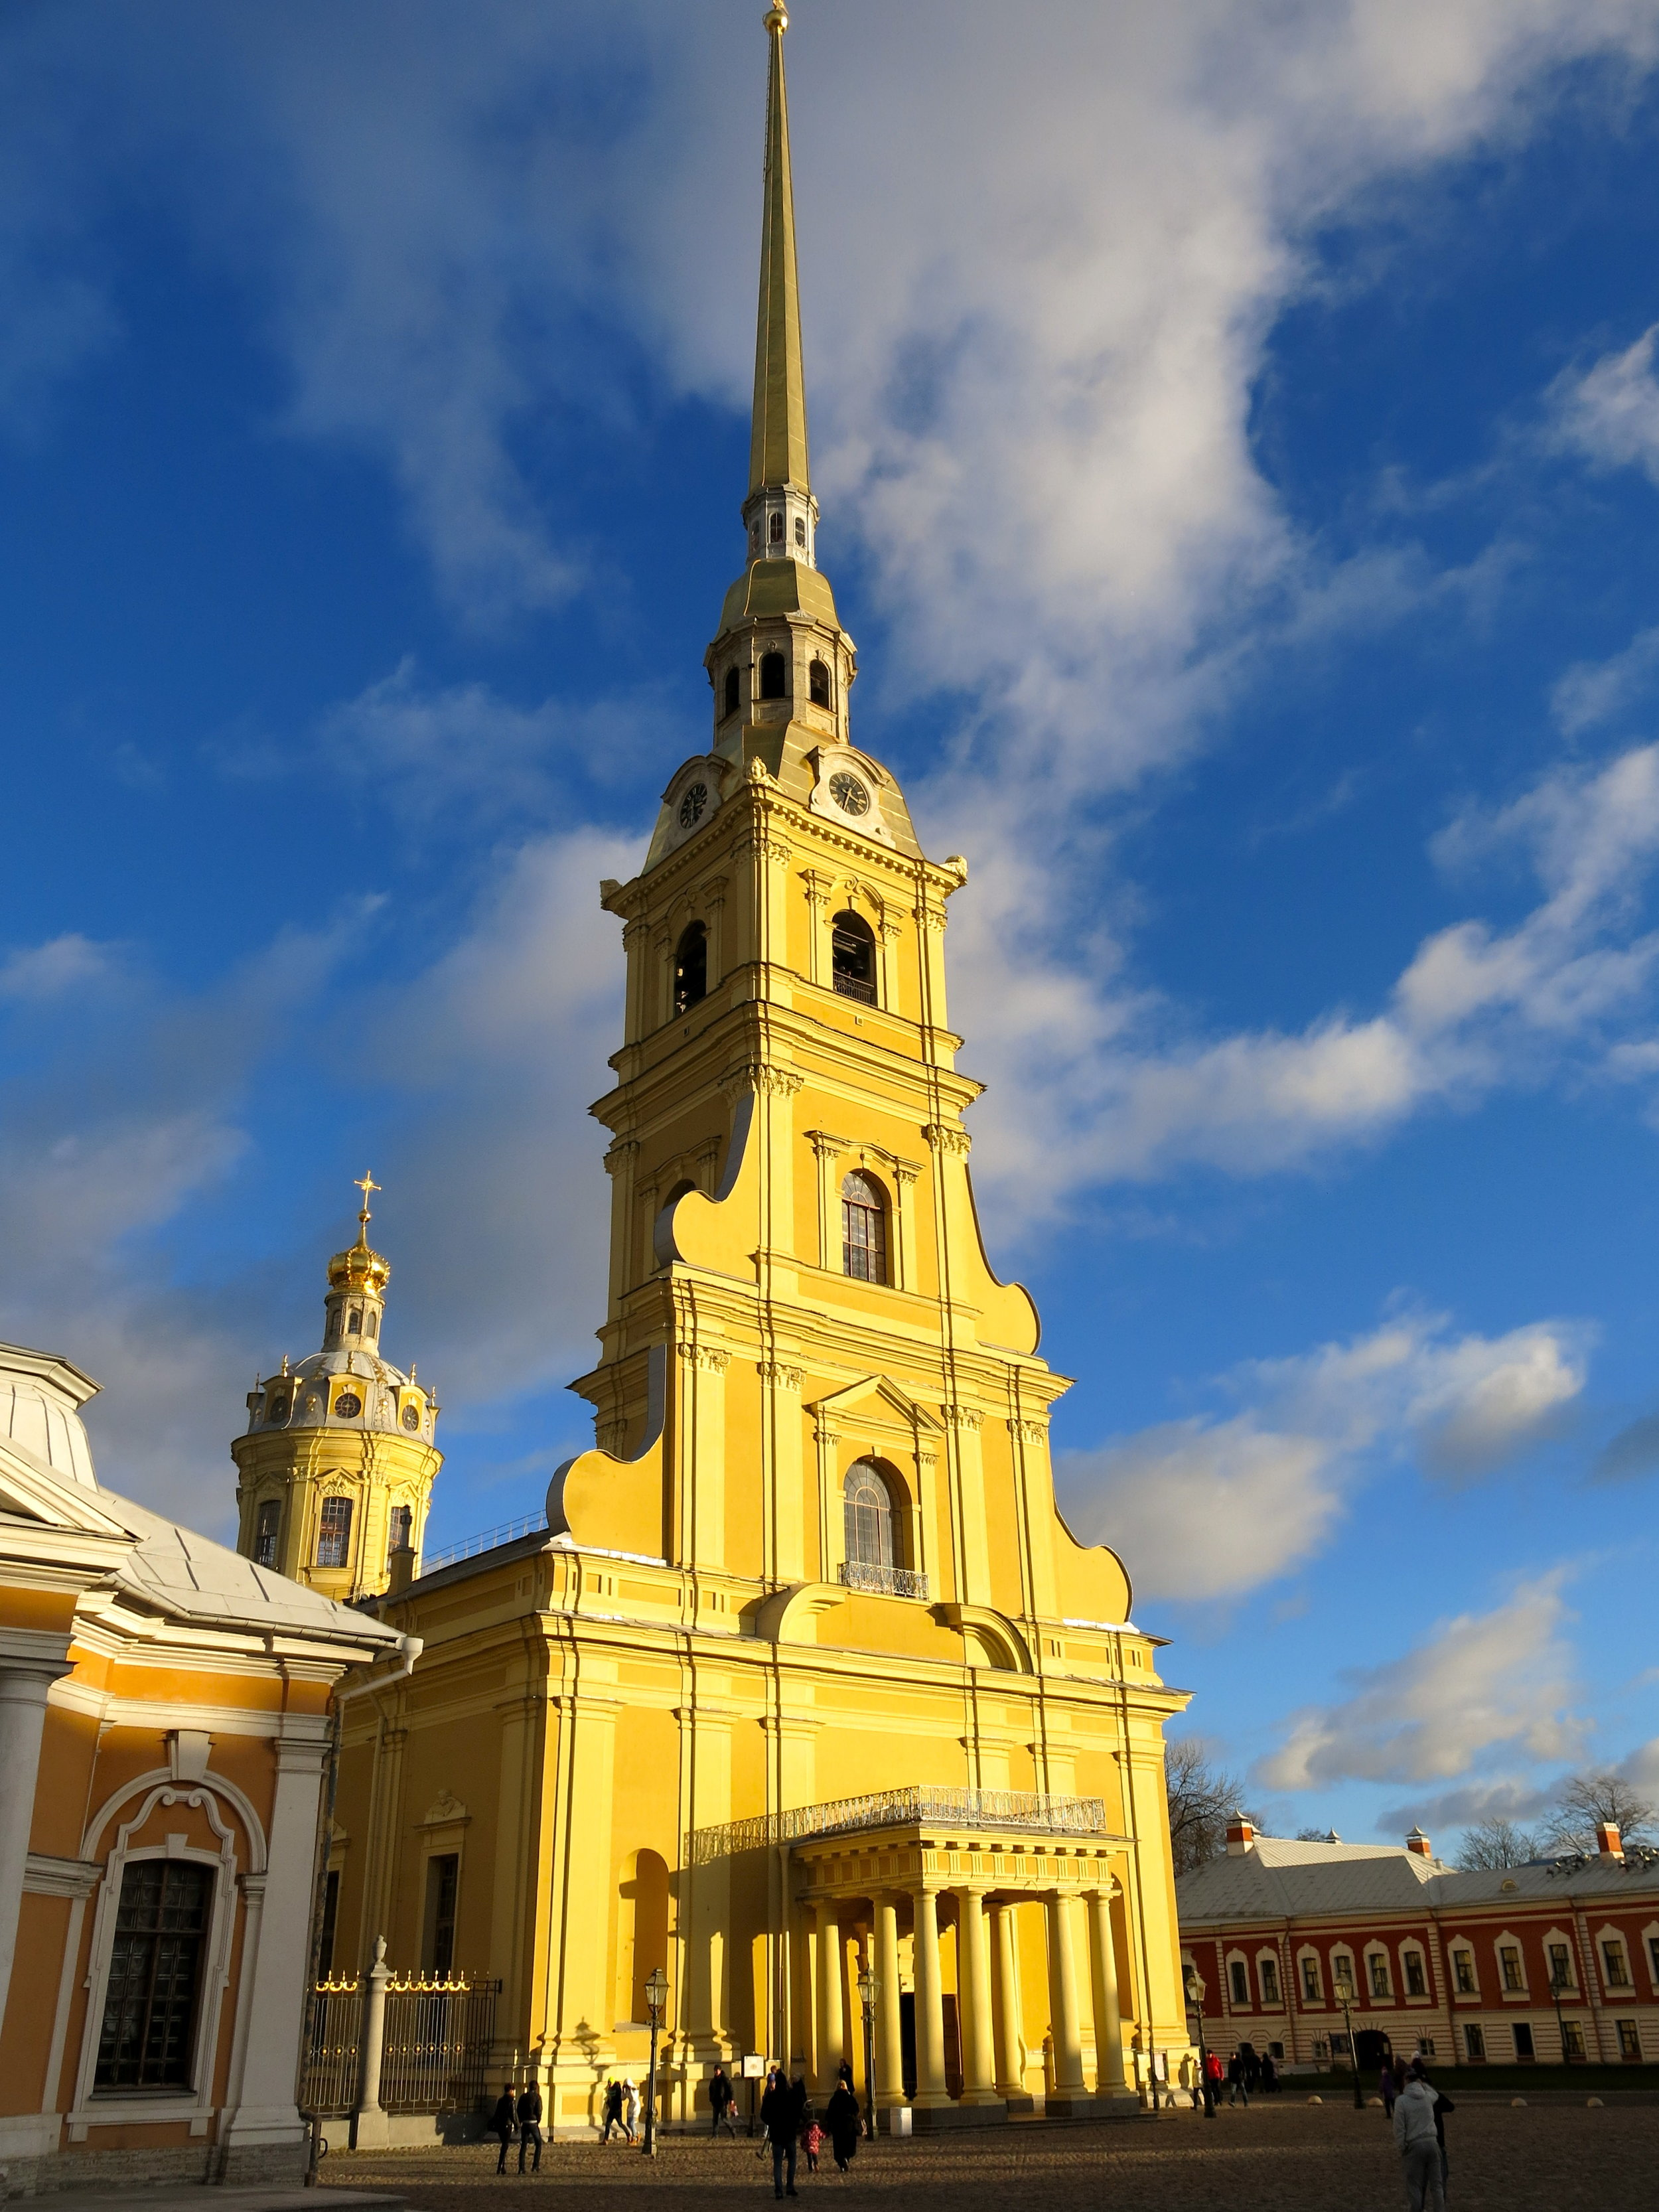 The Peter & Paul Cathedral host the tombstones of Tsars